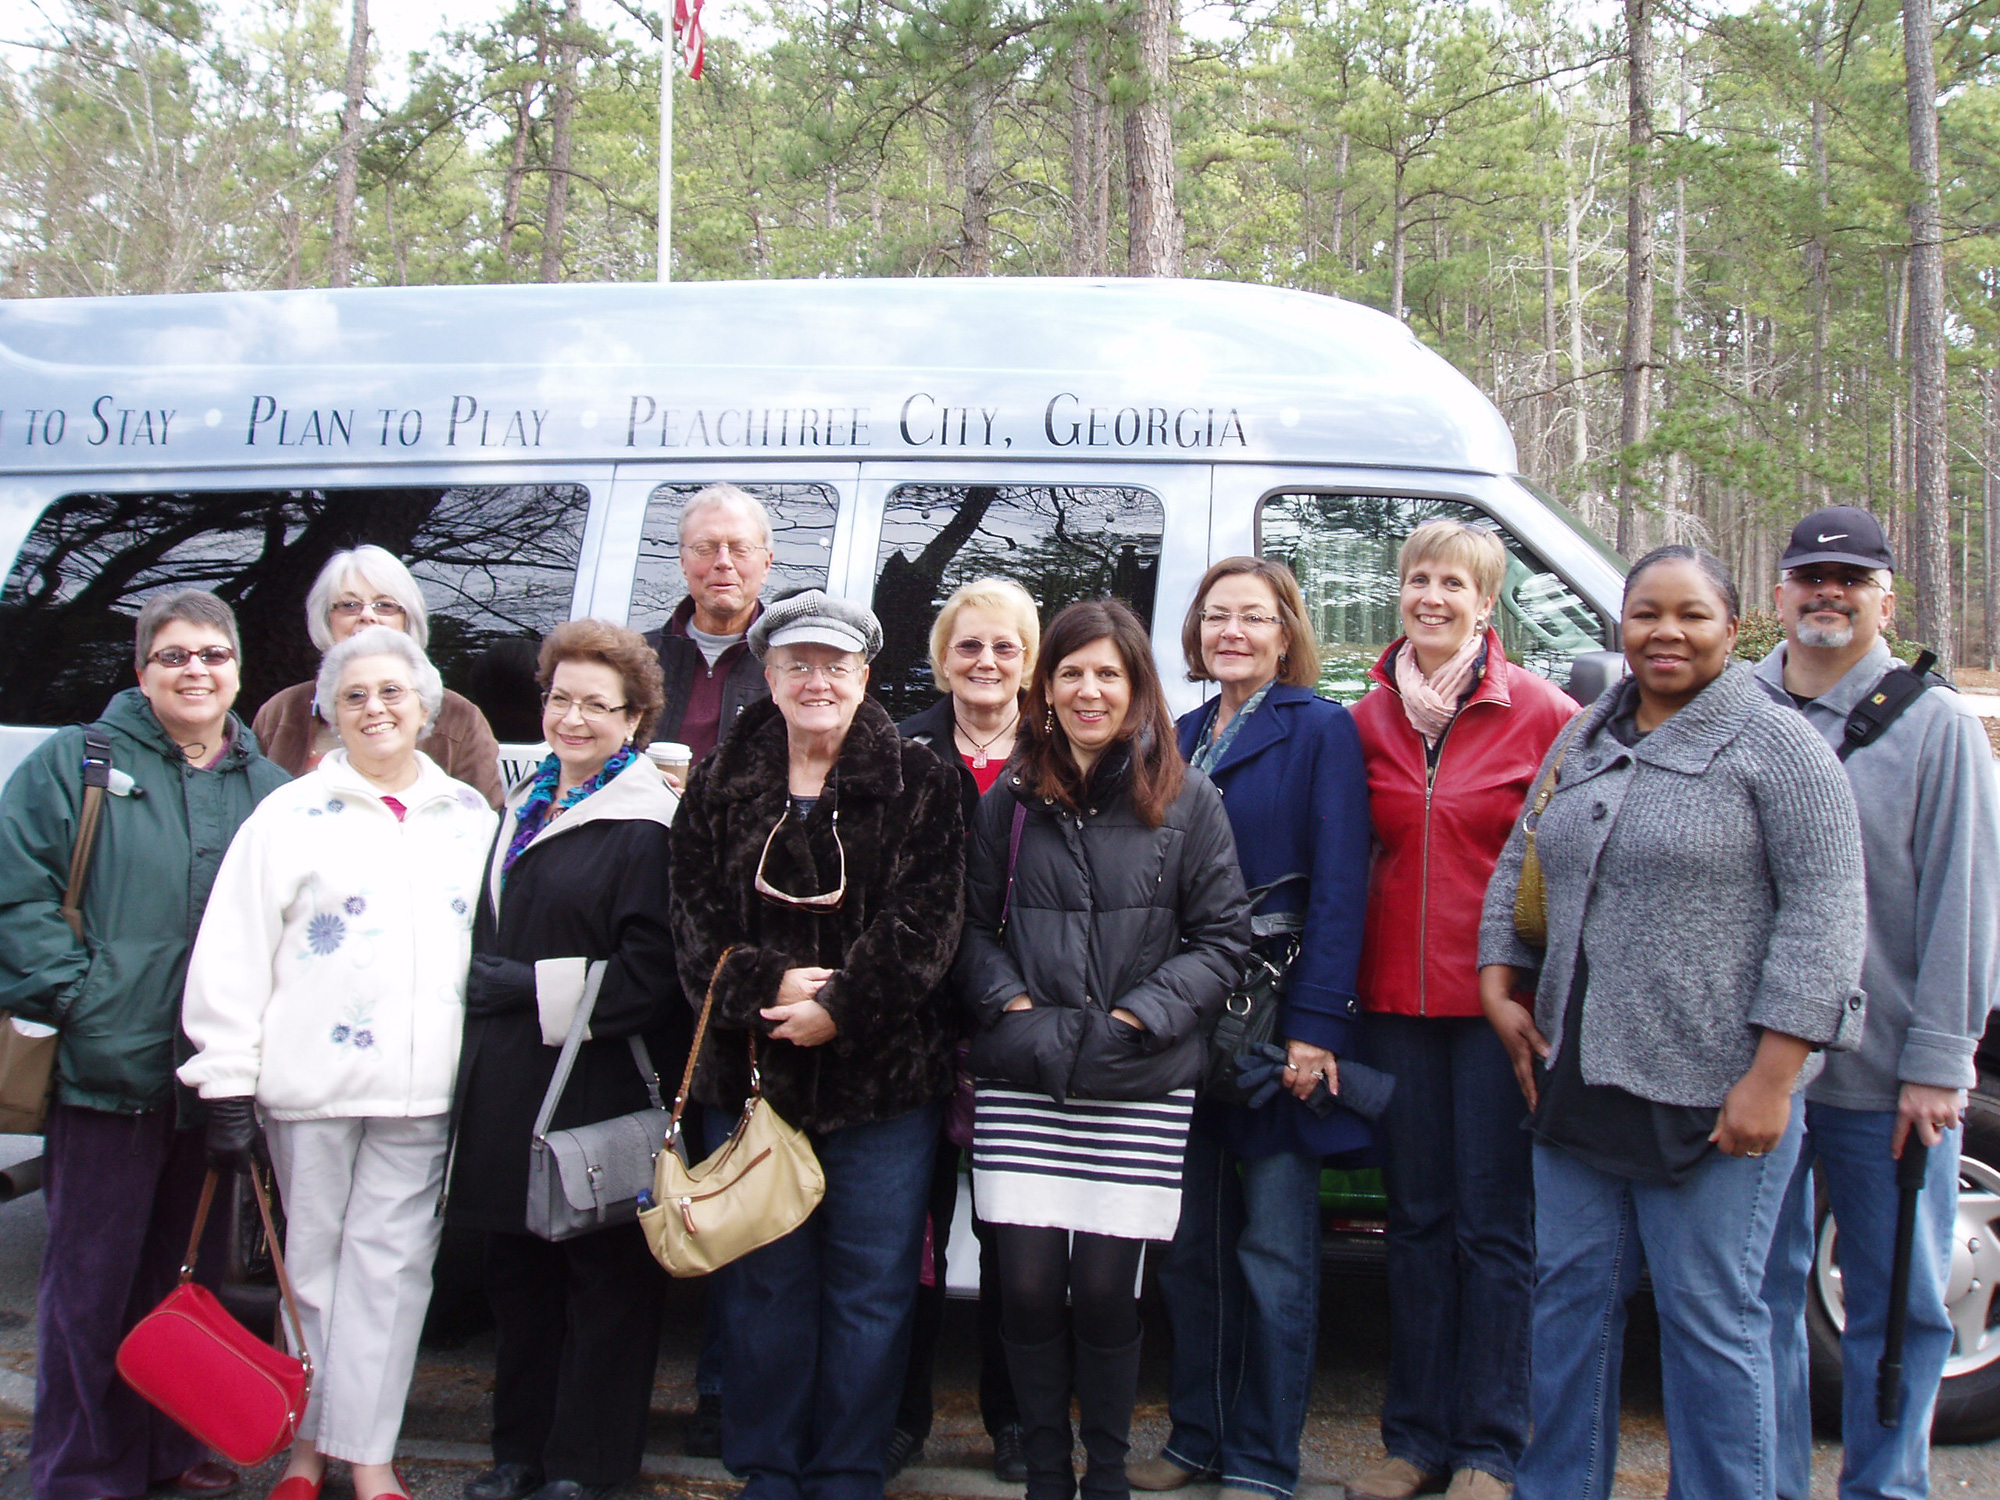 Southern Hollywood Film Tour in Peachtree City